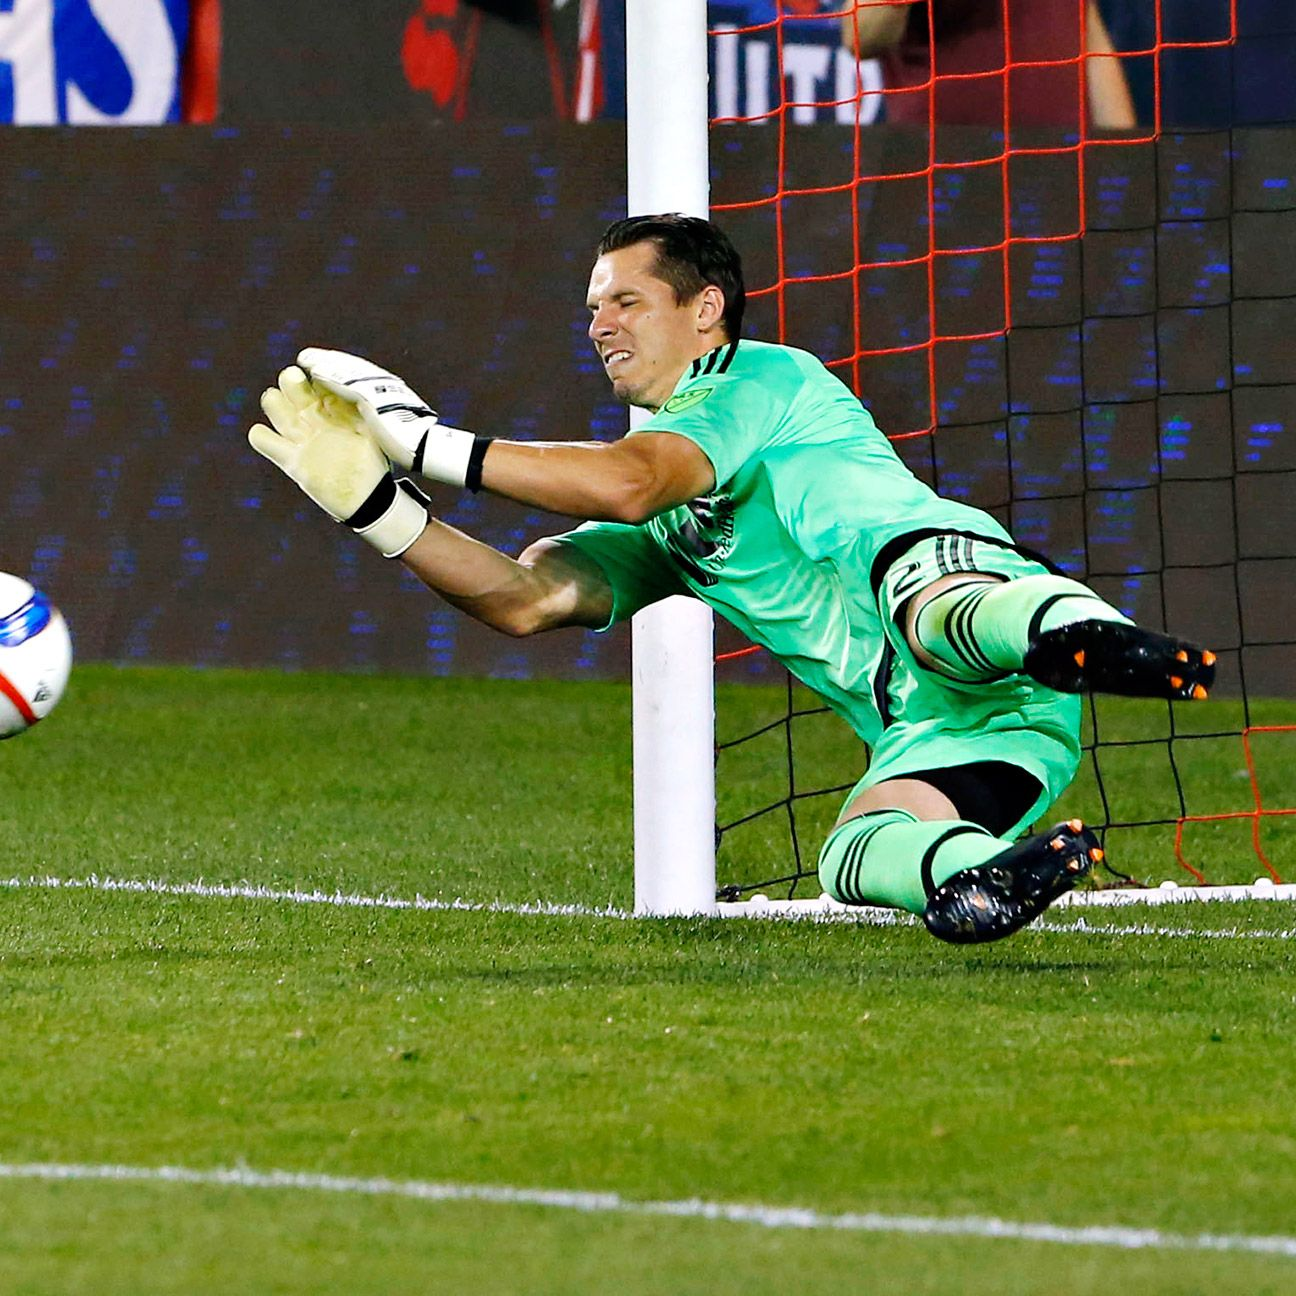 Last year, Shuttleworth was in the top-10 among many goalkeeping stats, including wins (16), saves (94), and clean sheets (8). So far this season, he has a record of 8-8-6 with six shutouts.